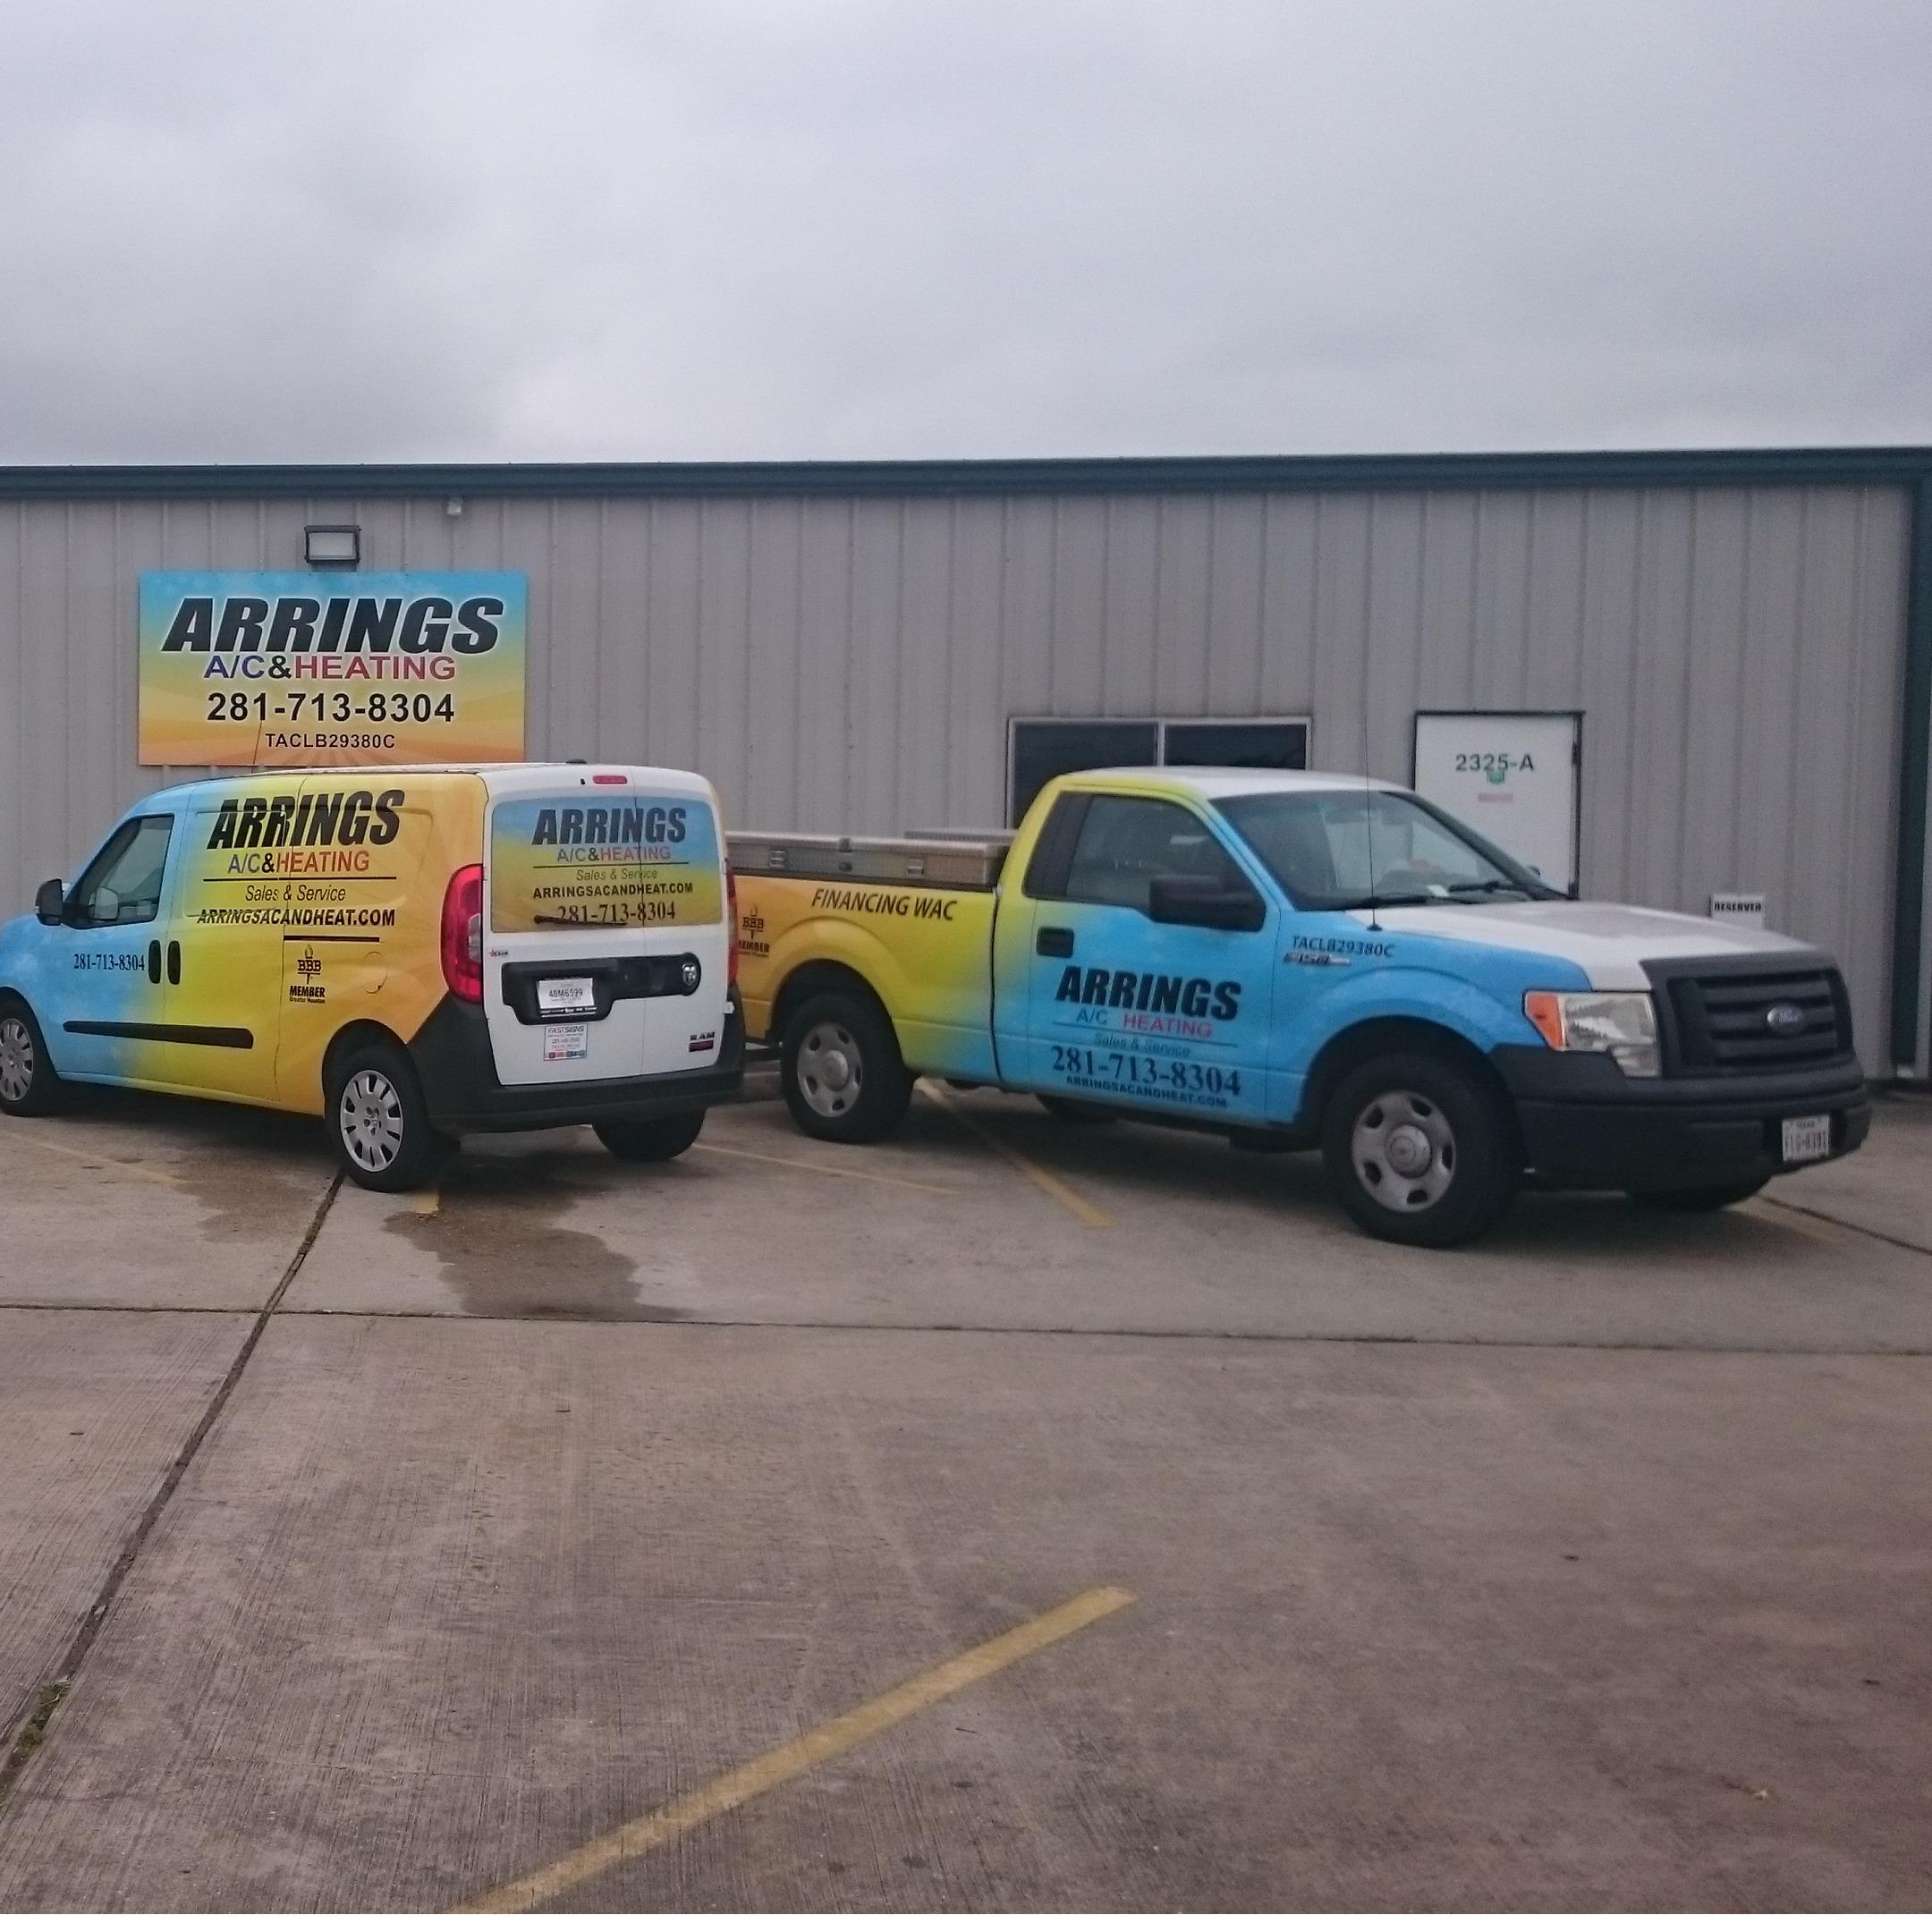 Arrings A/C & Heating Services